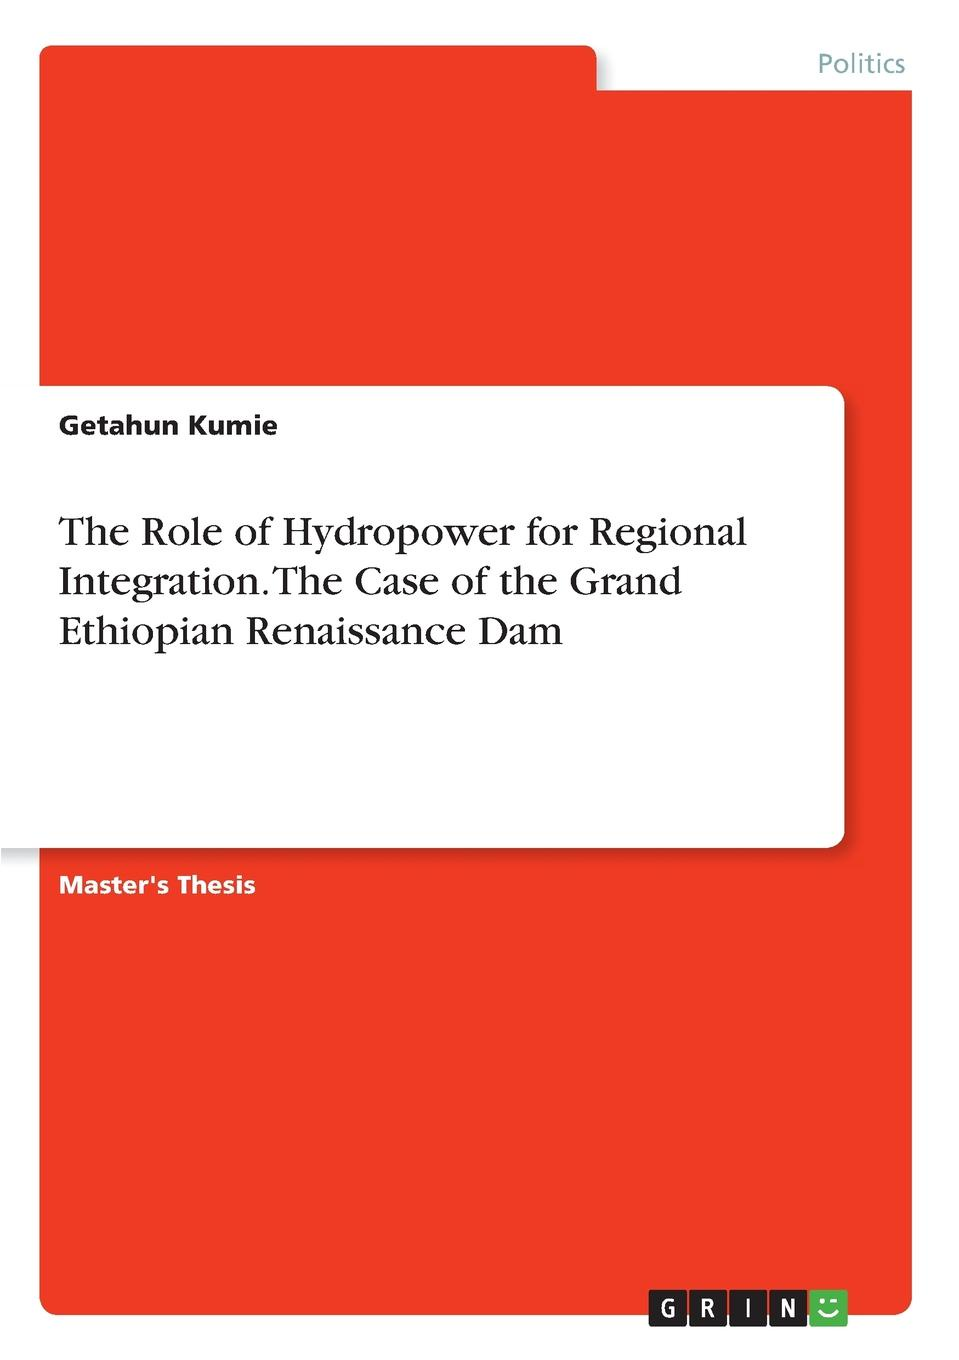 Getahun Kumie The Role of Hydropower for Regional Integration. The Case of the Grand Ethiopian Renaissance Dam